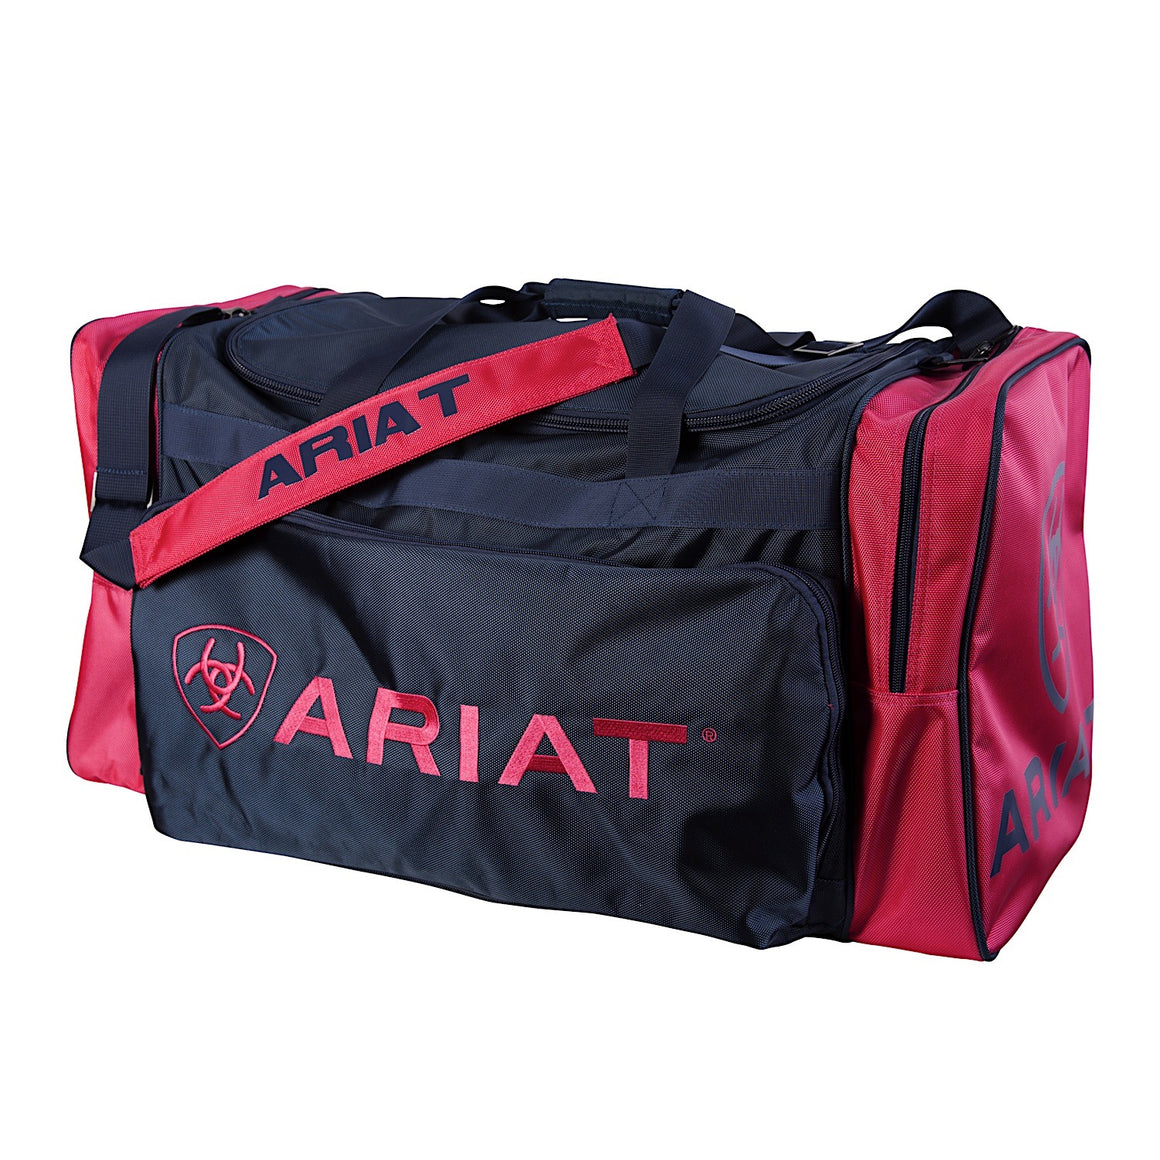 Ariat Gear Bag Pink/Navy